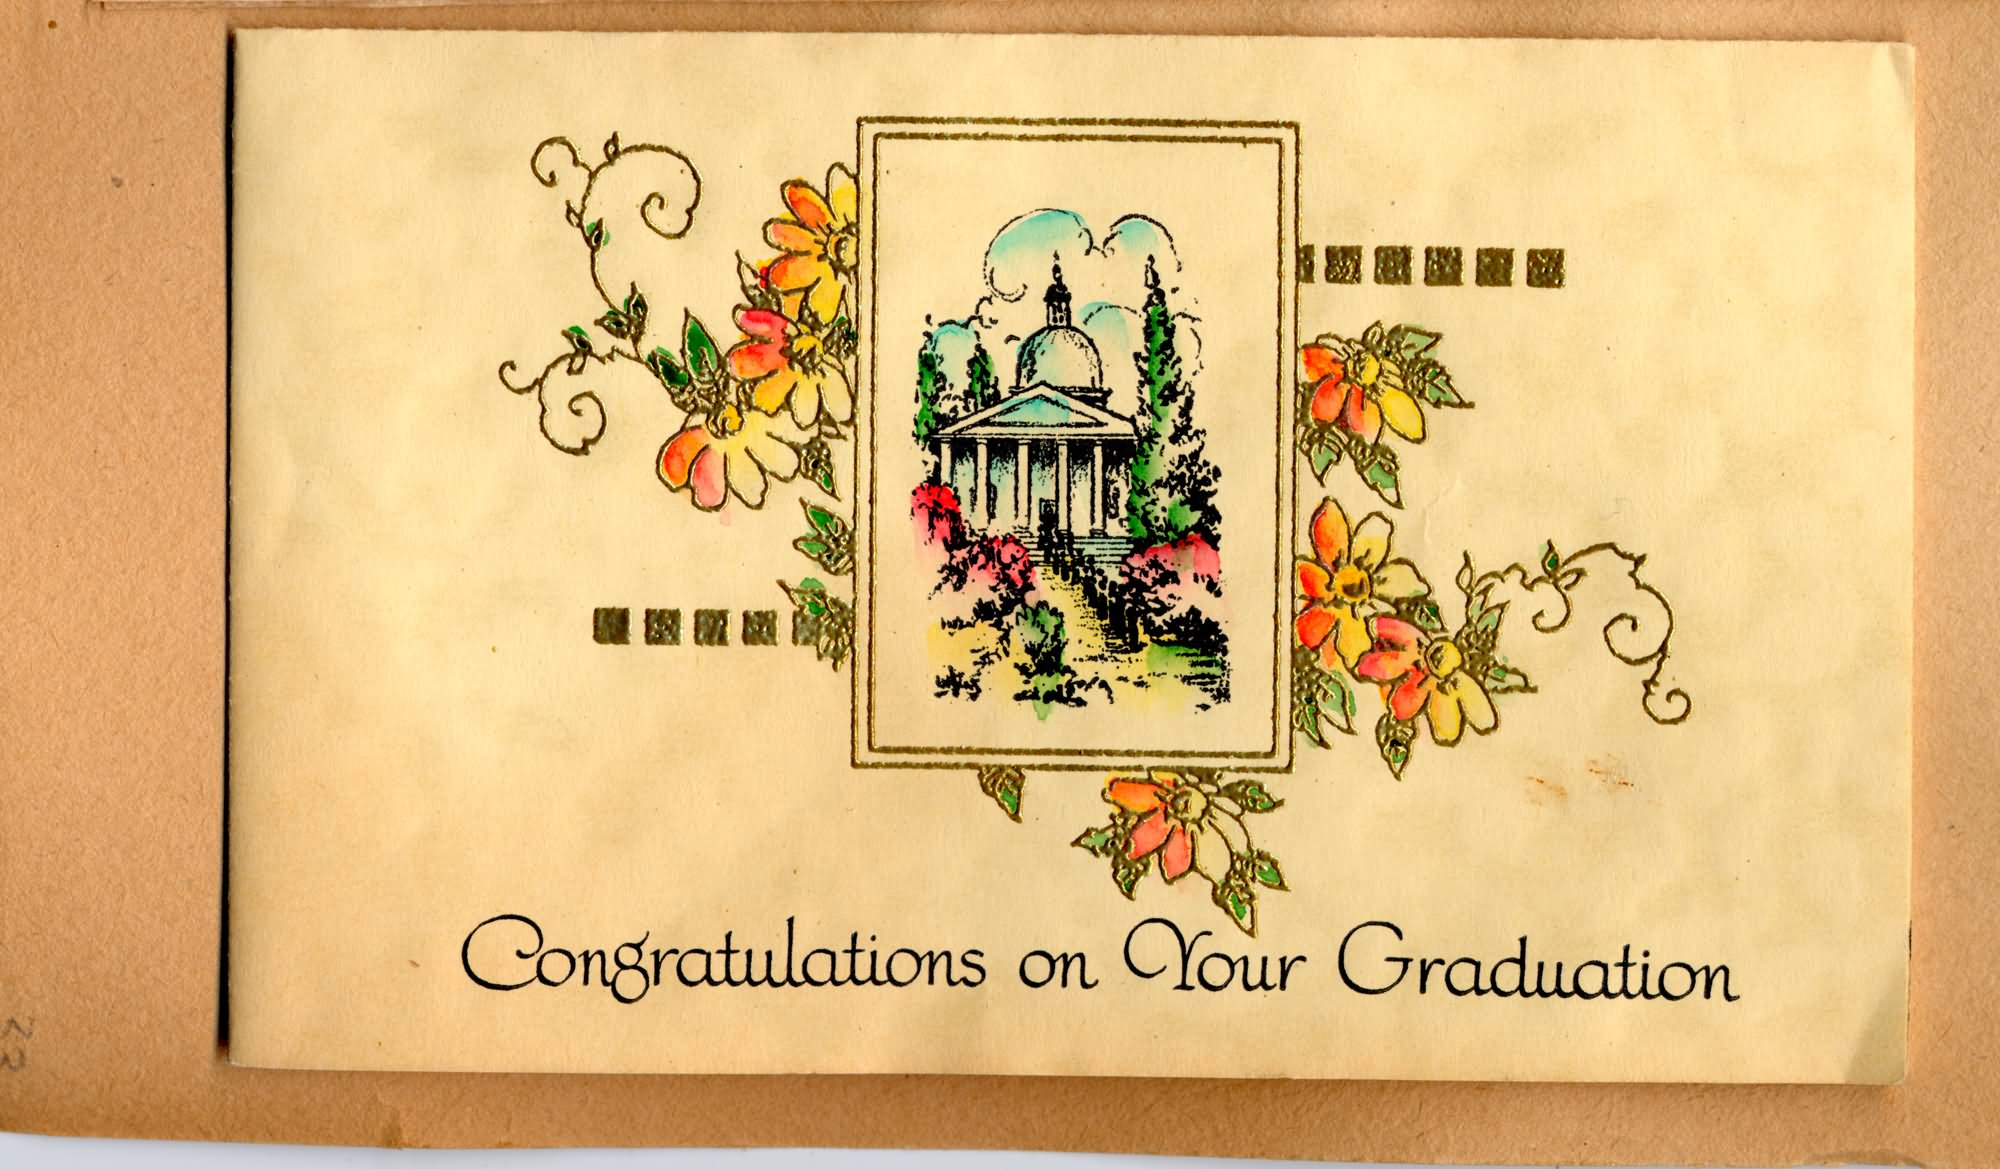 30 wonderful congratulations on graduation wishes pictures congratulations on your graduation card kristyandbryce Gallery